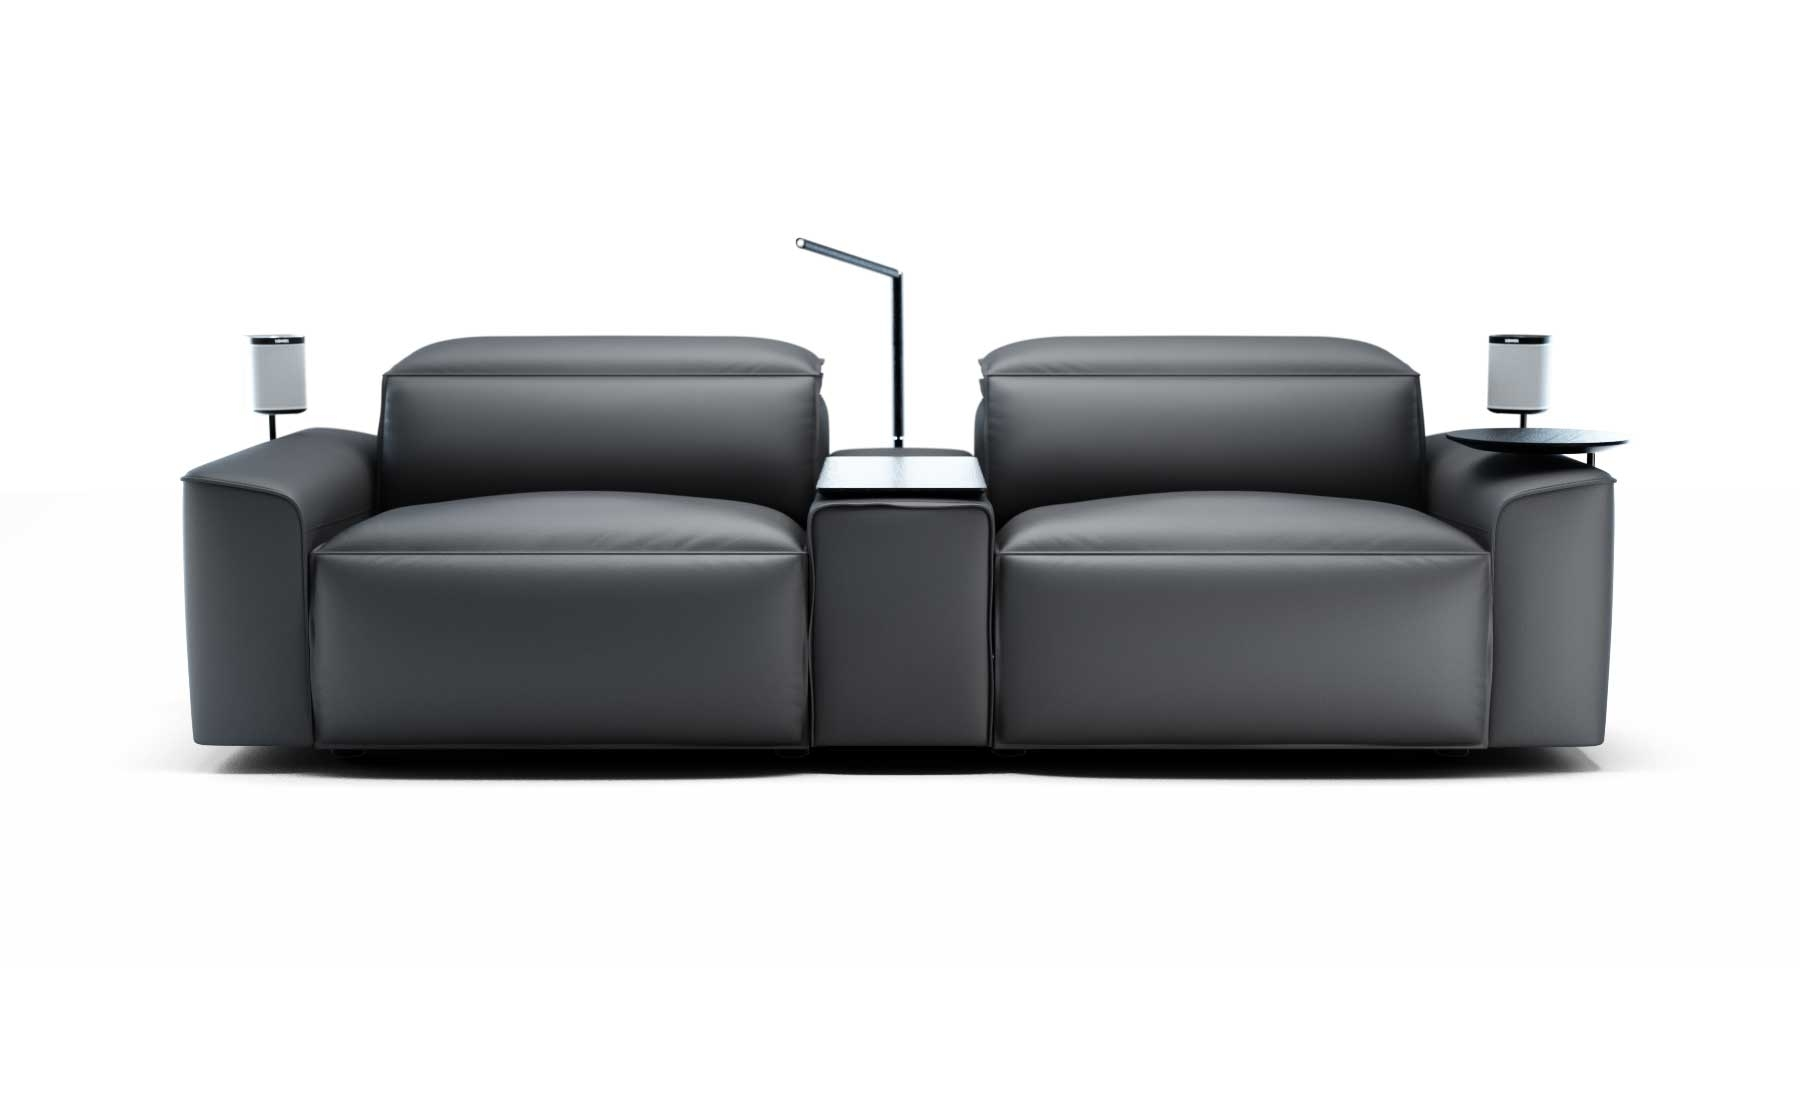 King Cloud Iii Recliner Sofa – Luxurious Reclining Sofa | Lounge Within Recliner Sofas (Gallery 9 of 10)